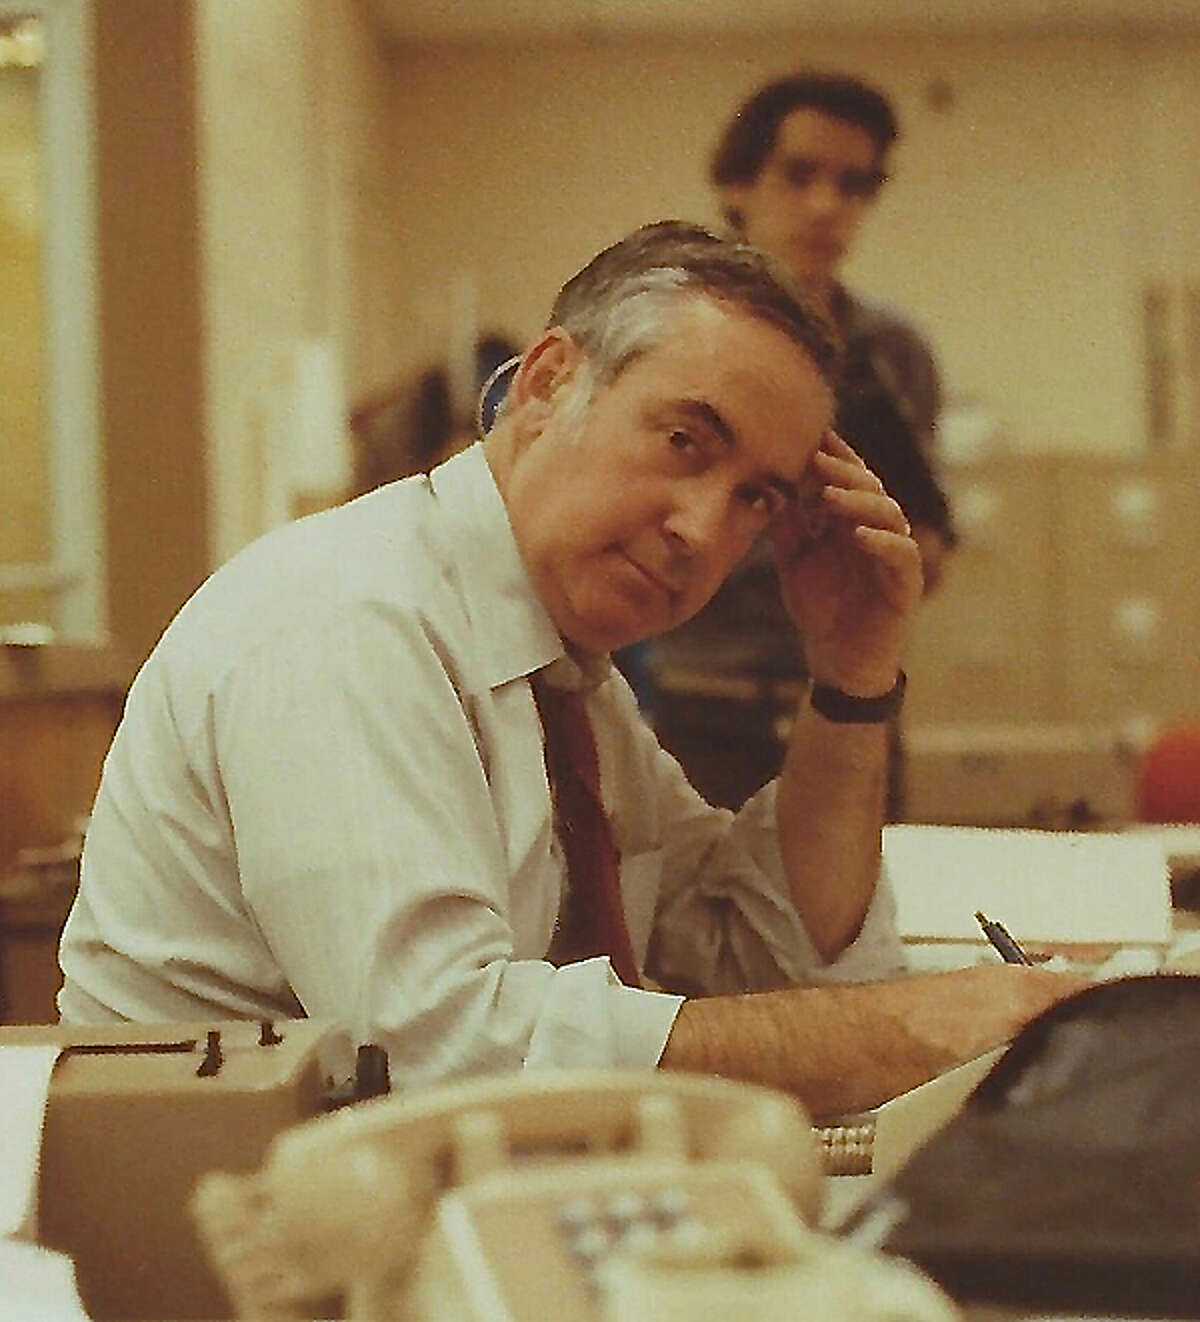 New anchor Ernie Tetrault, a legend among New York broadcasters, has died at 94.